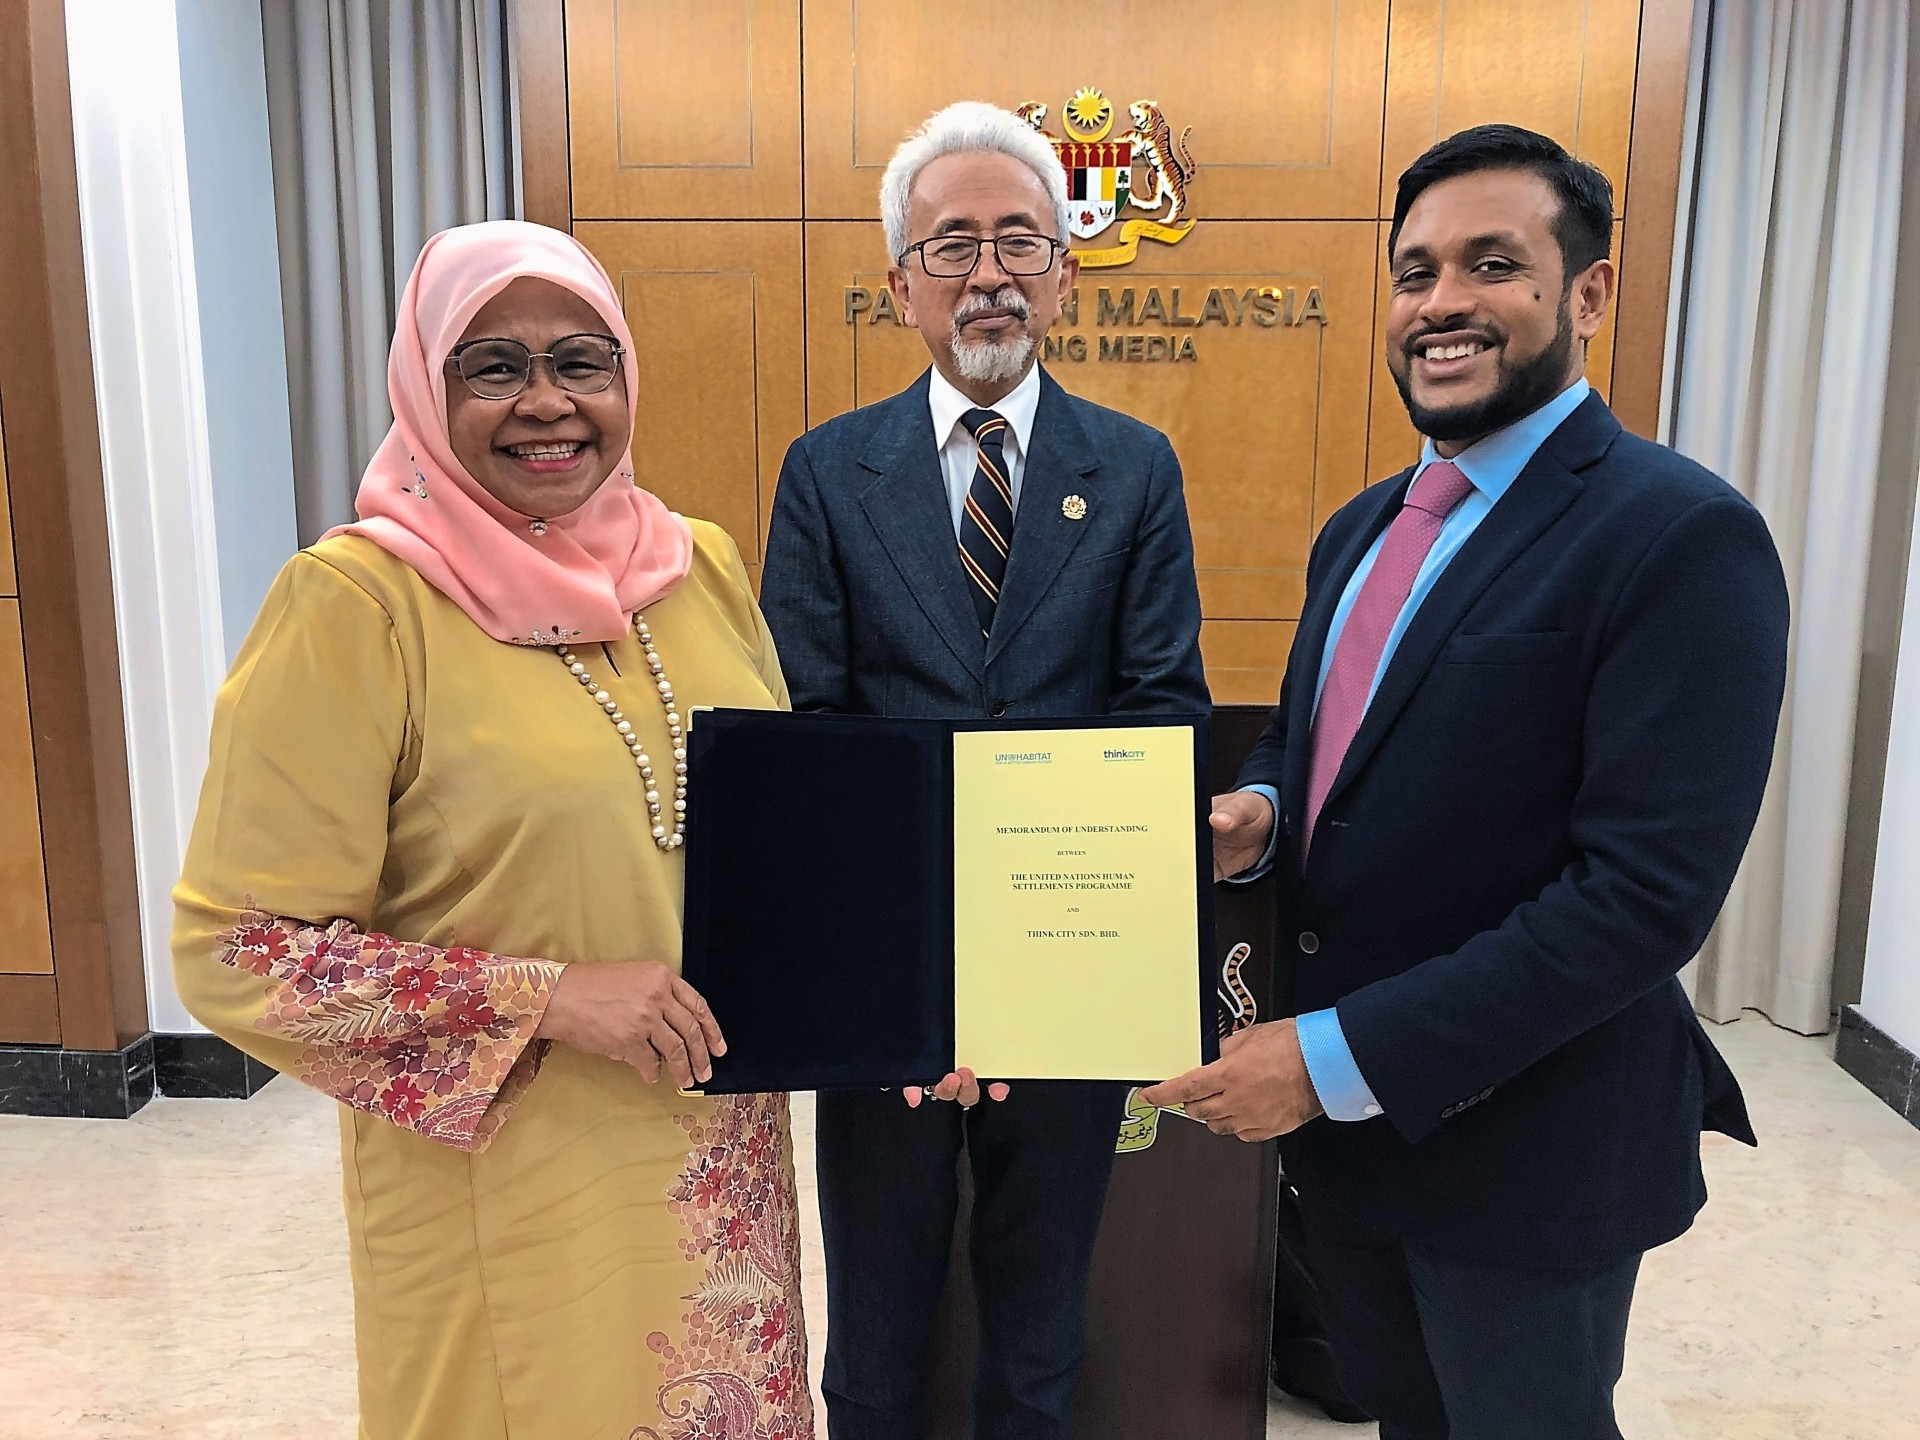 Hamdan (right) and Maimunah signed an extended MOU, representing Think City and UN-Habitat respectively, witnessed by Deputy Housing and Local Government Minister Datuk Raja Kamarul Bahrin Shah Raja Ahmad.